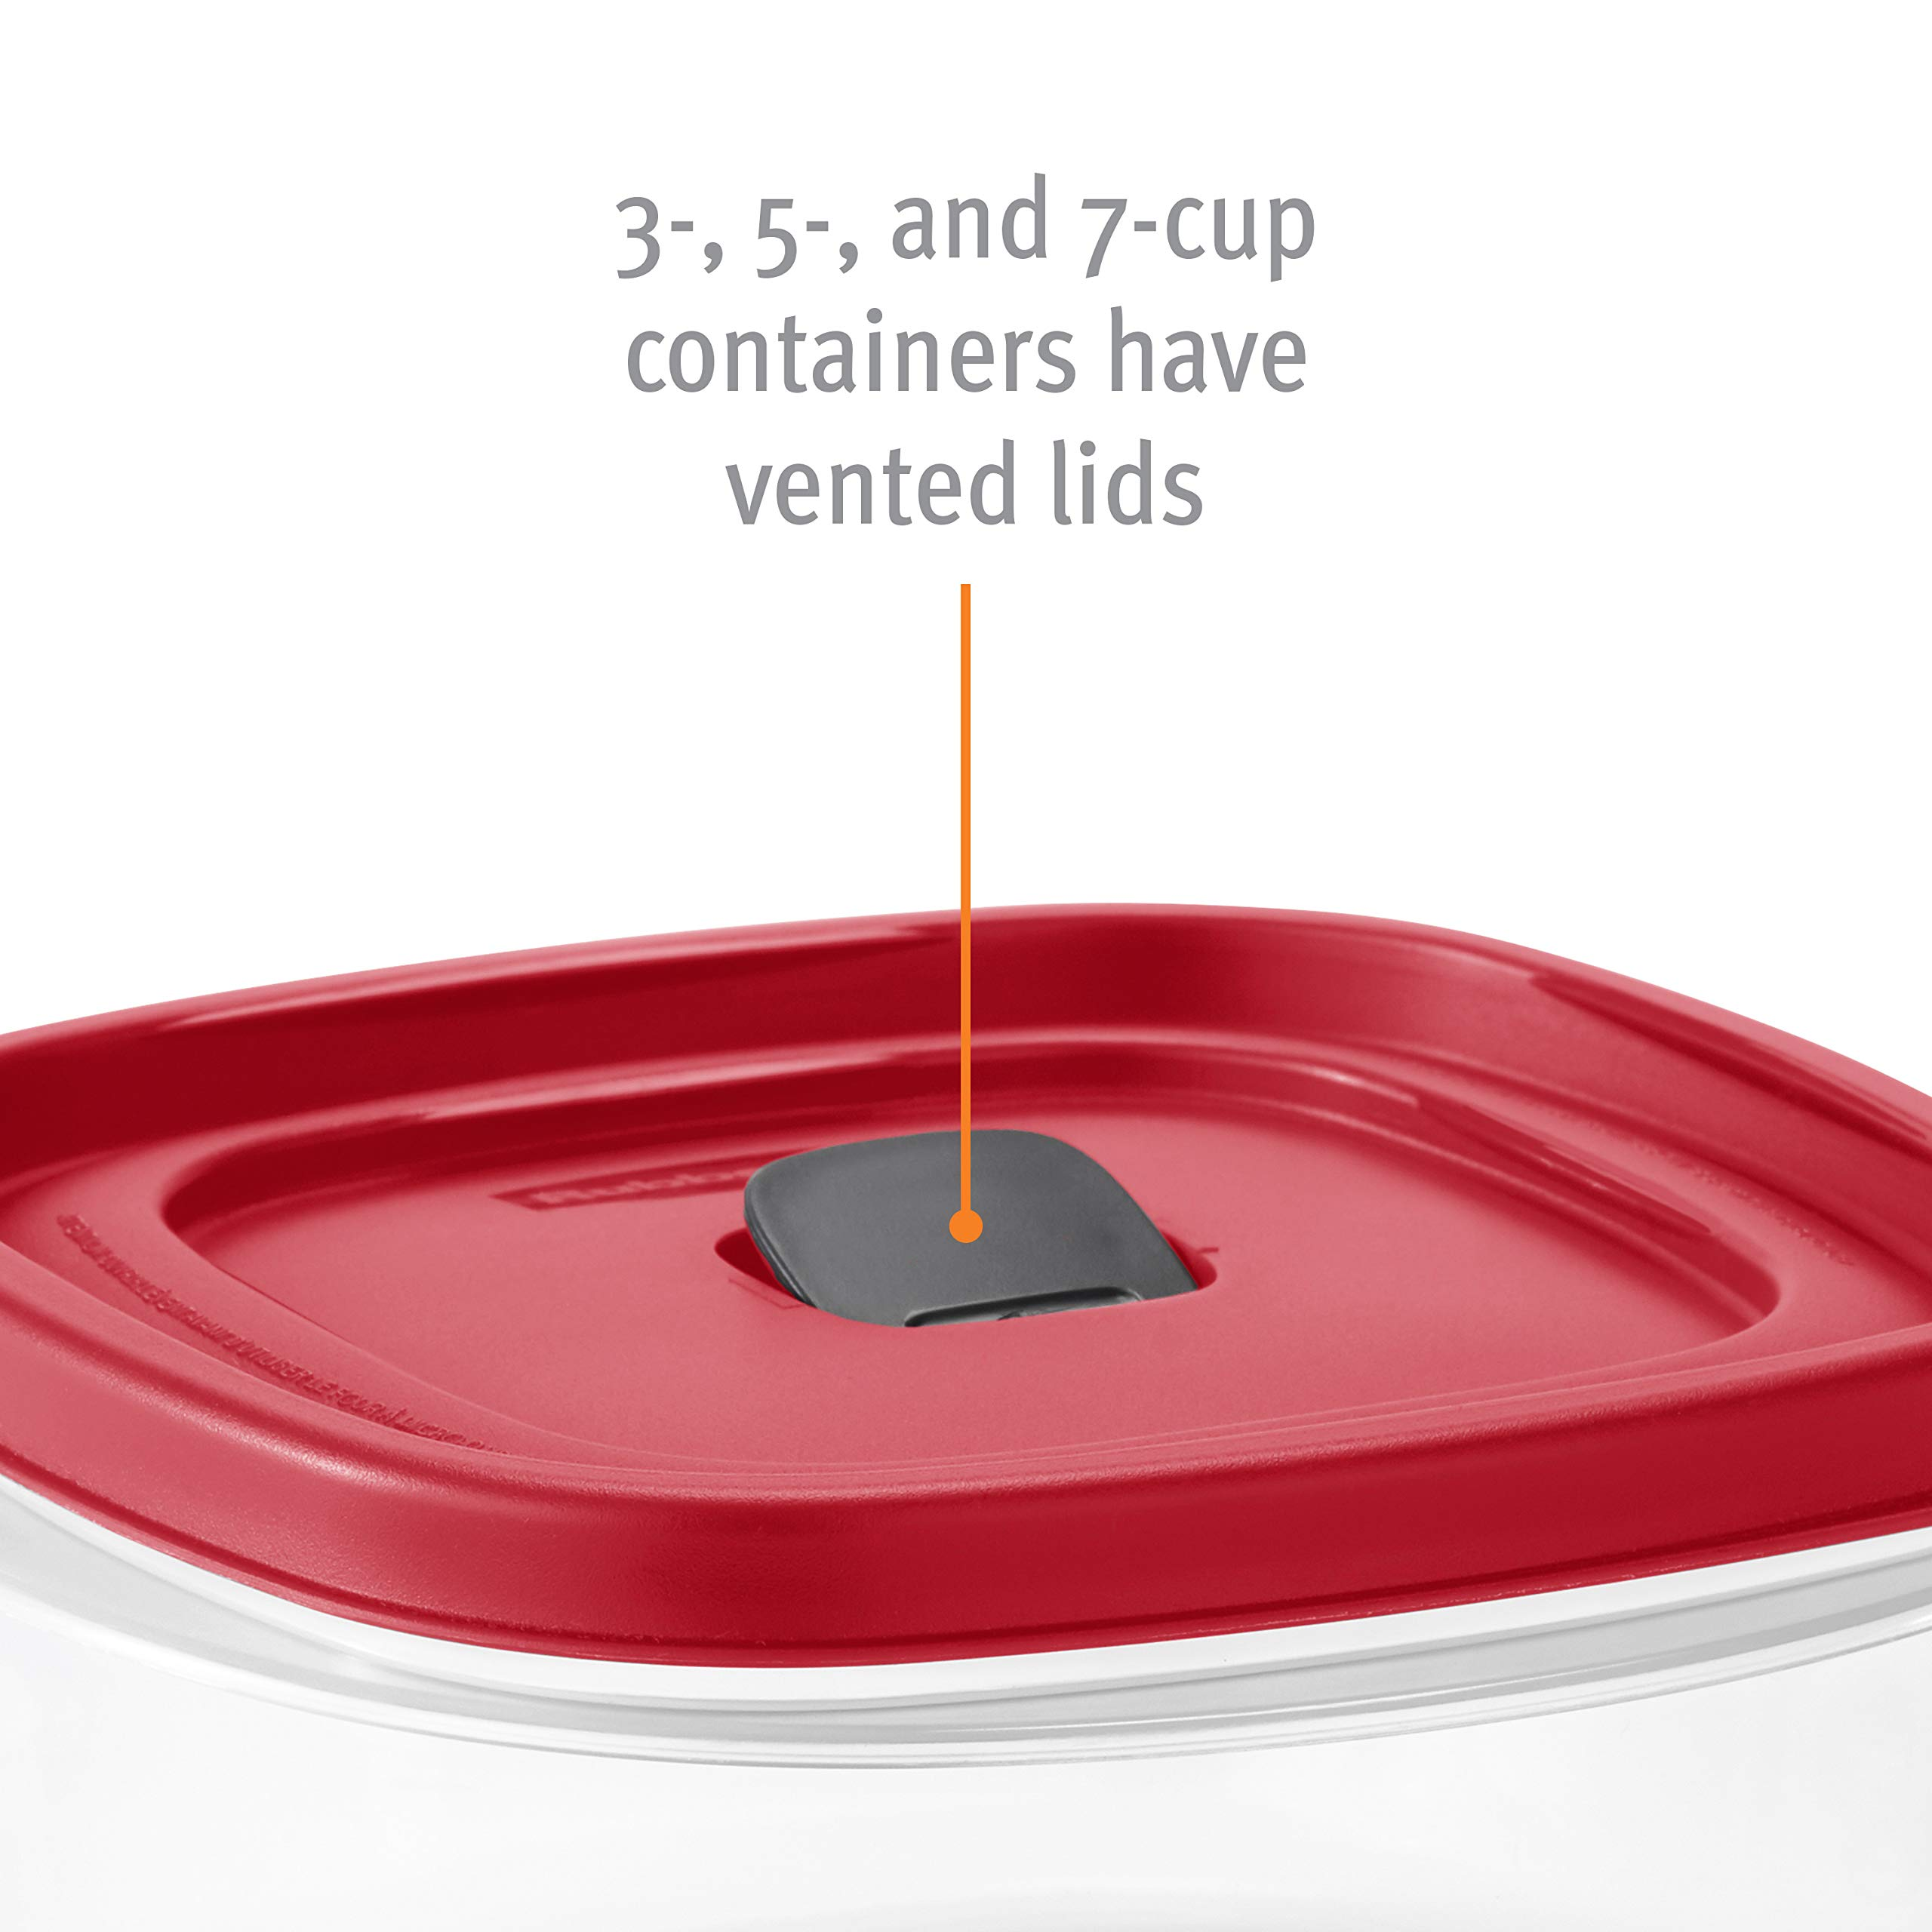 Rubbermaid 2063704 Easy Find Vented Lids Food Storage Container, 42pc New, Racer Red by Rubbermaid (Image #7)